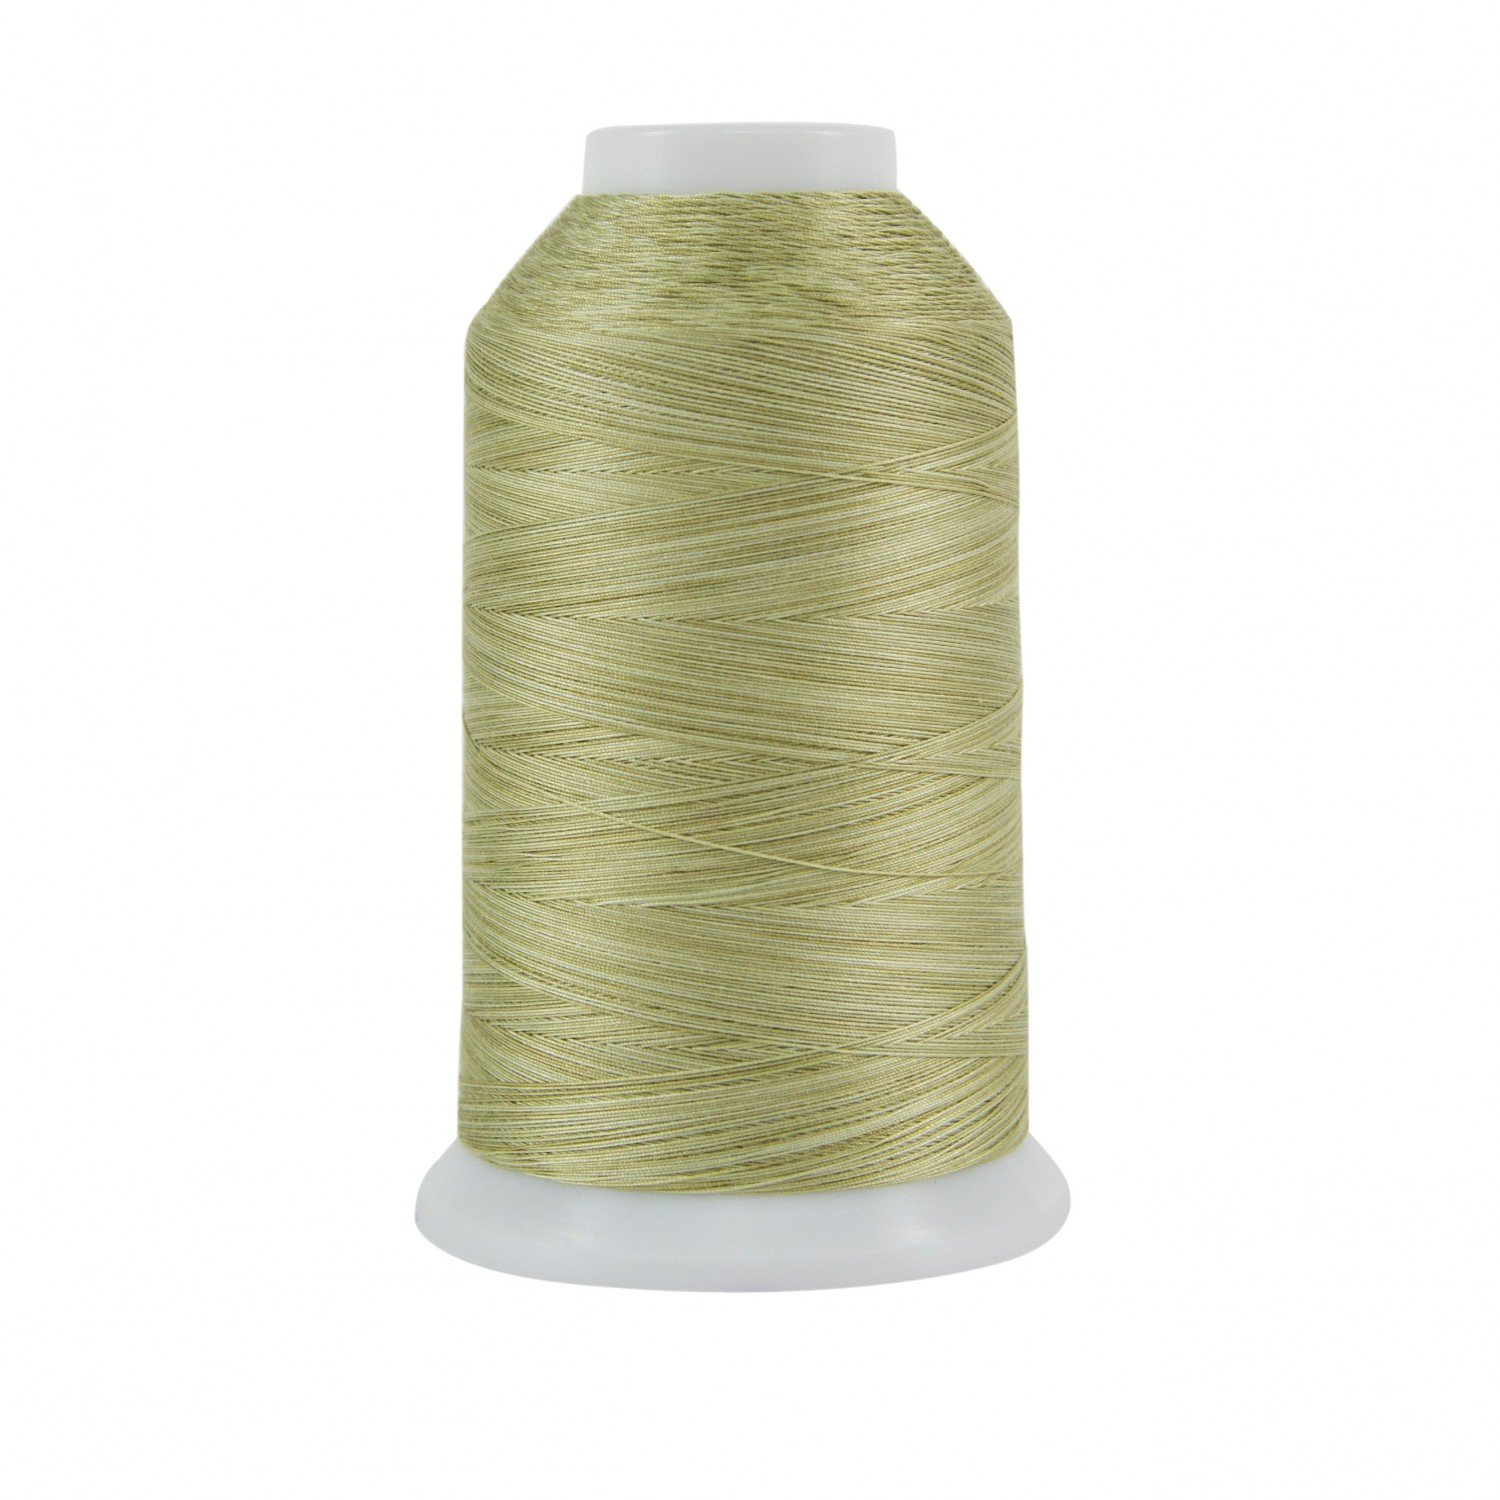 King Tut Cotton Quilting Thread 967 Basket 3-ply 40wt 2000yds Cone